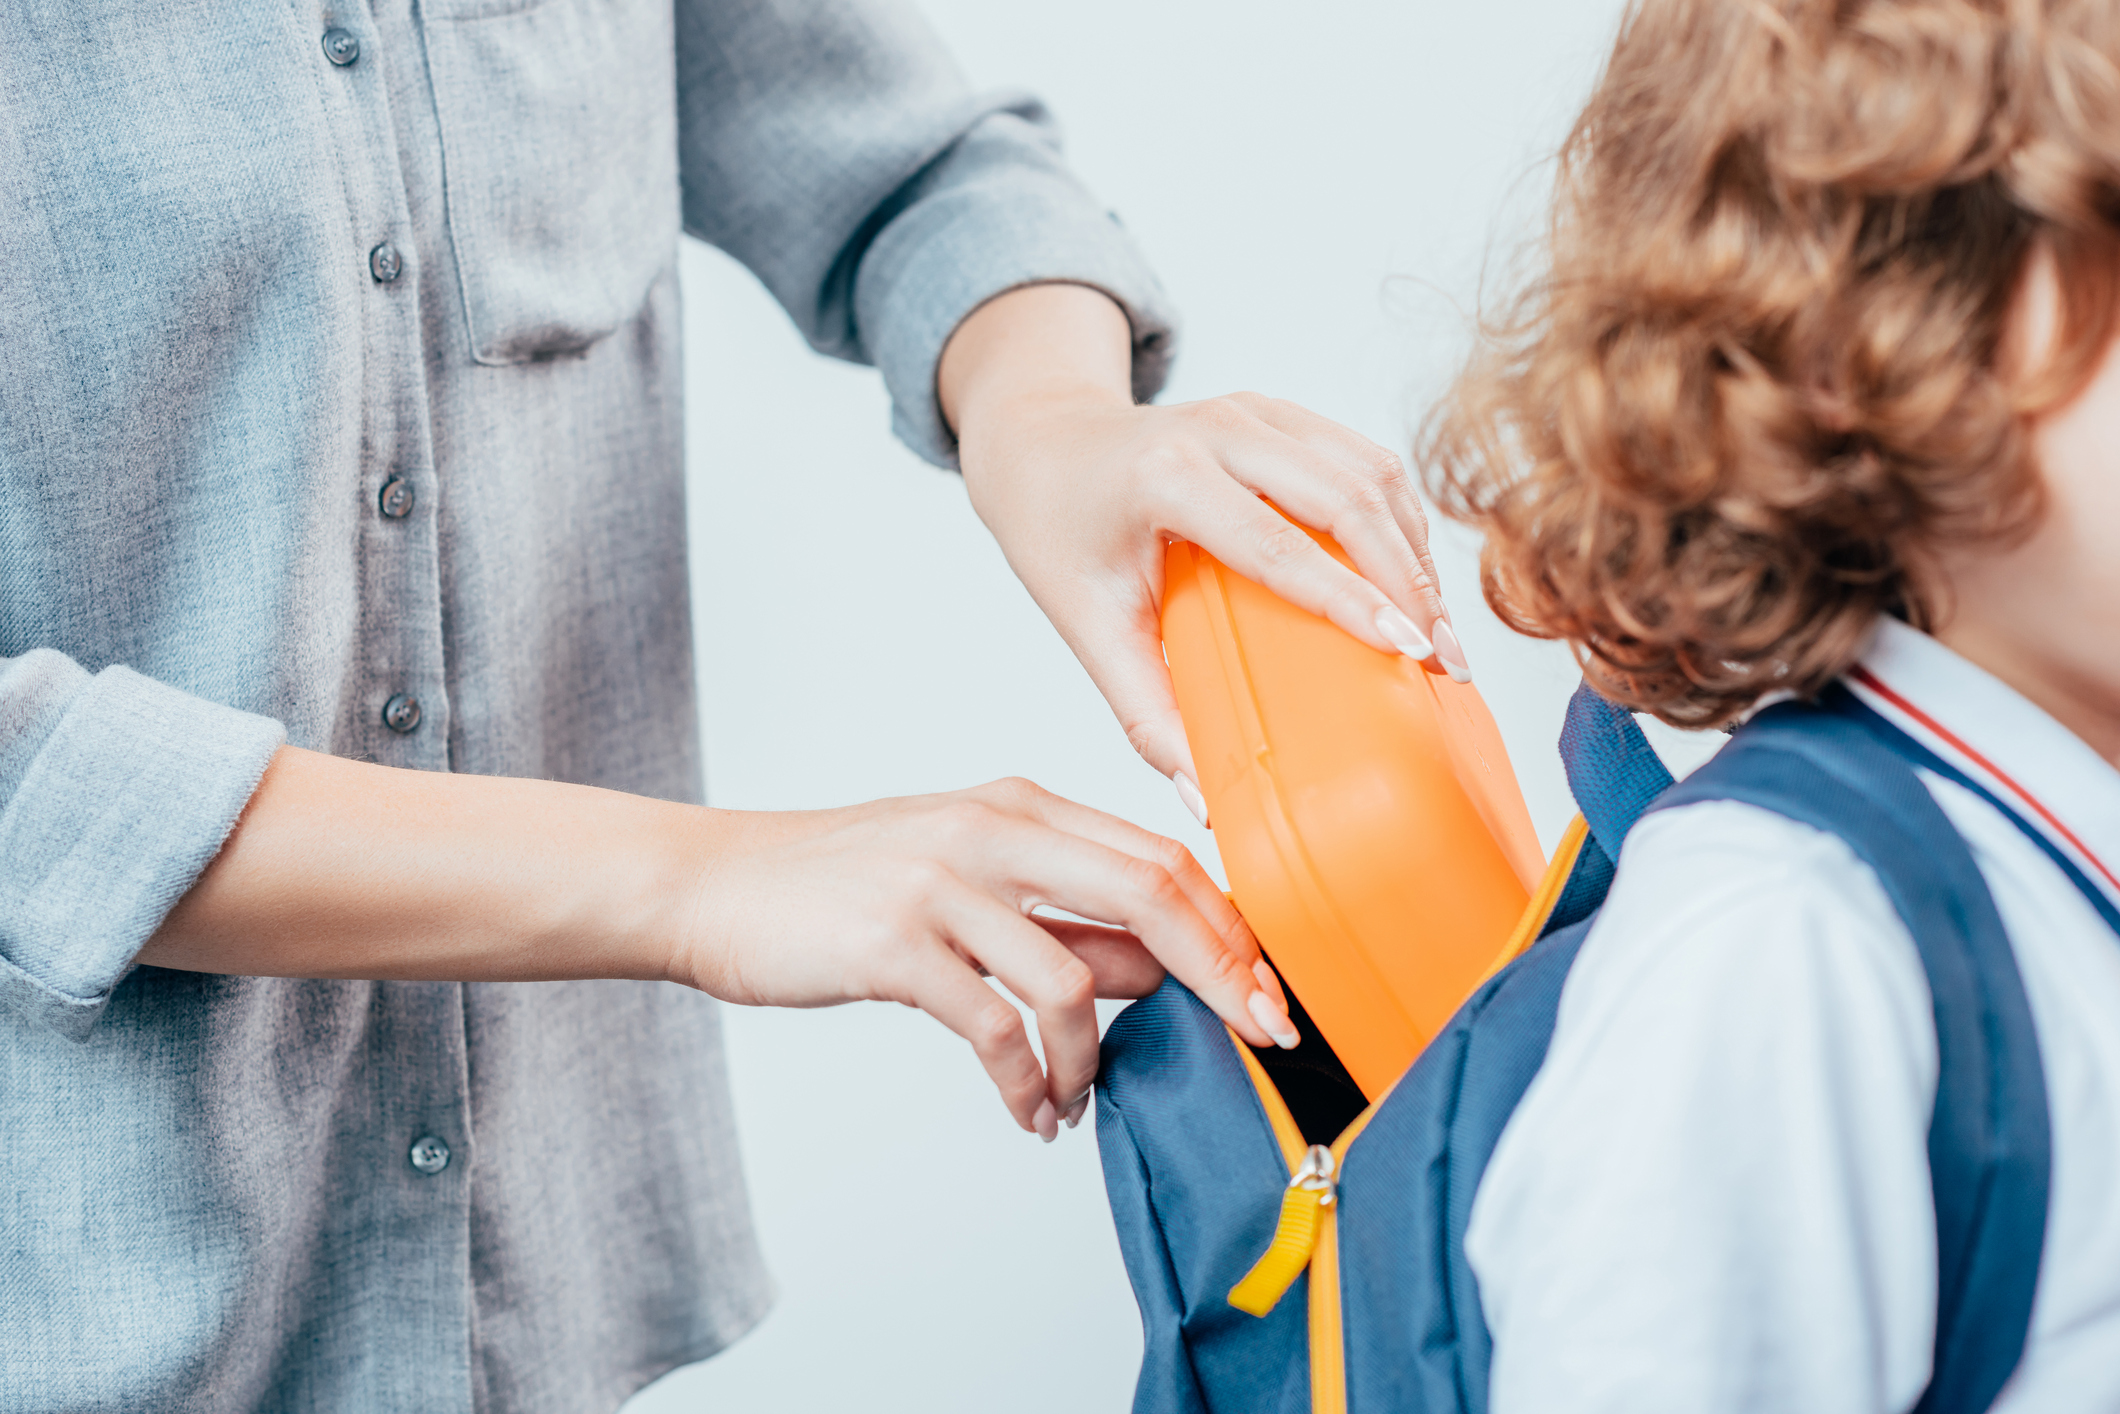 Are My Kids Too Dependent on Me?